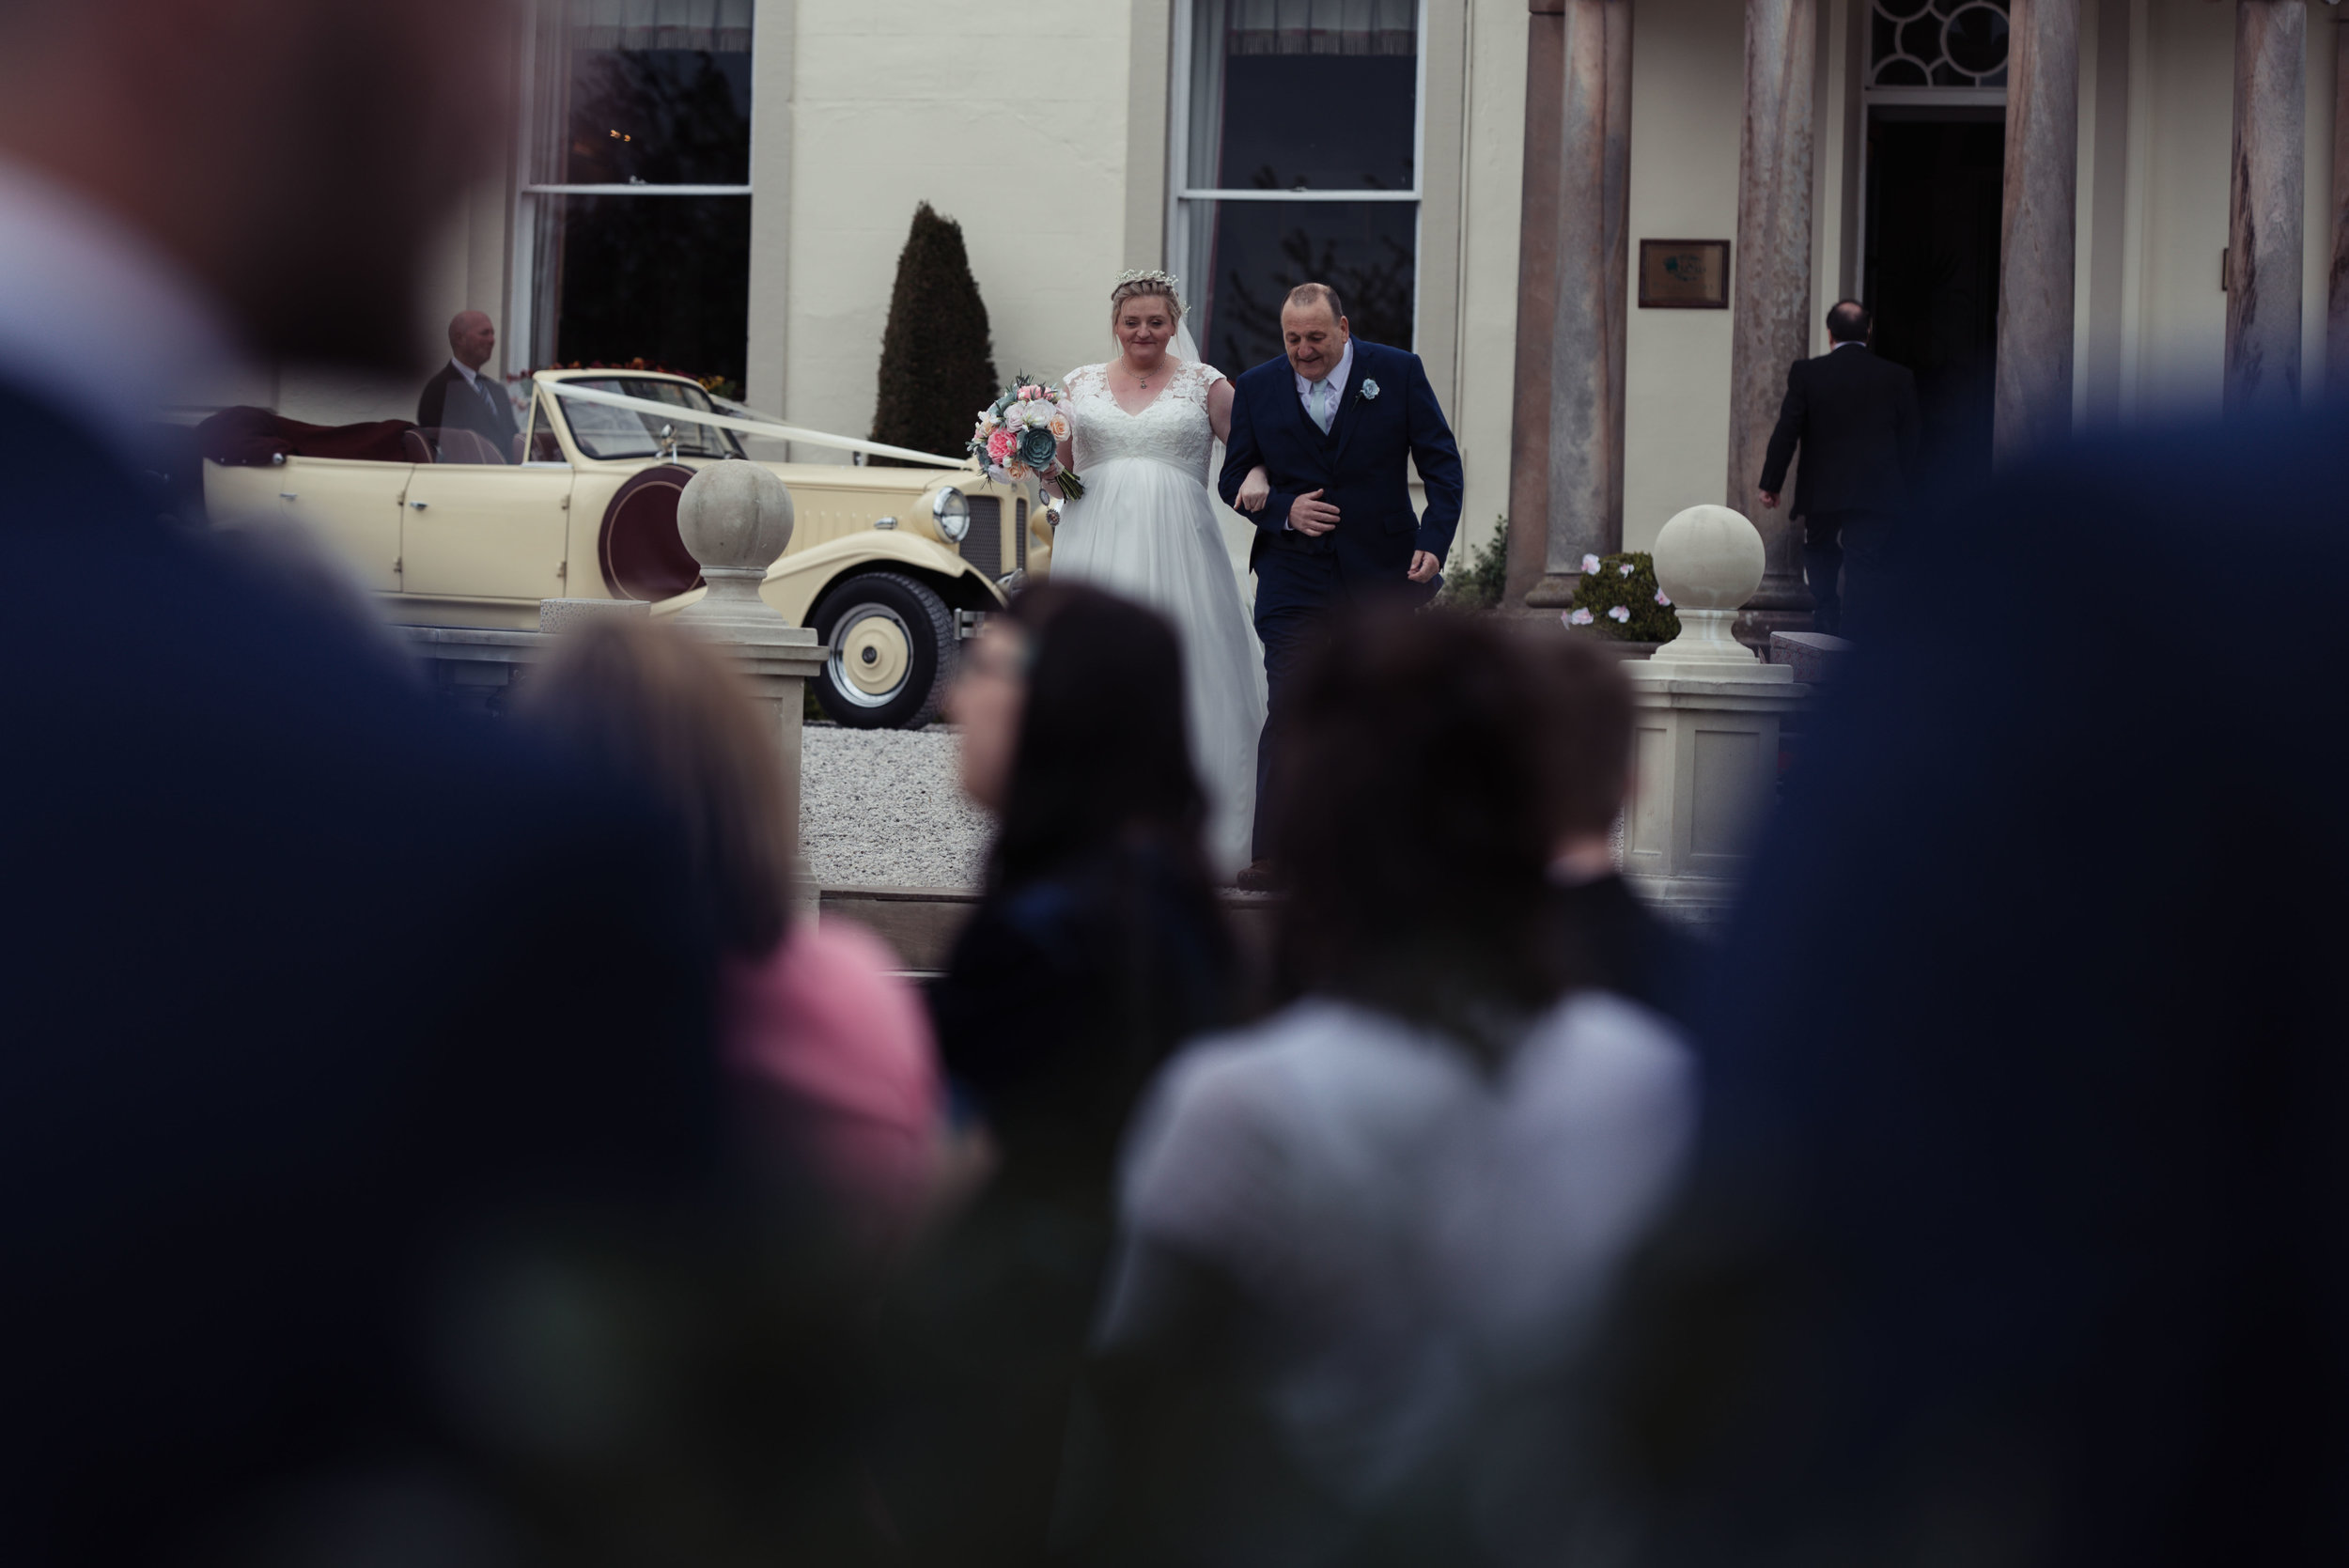 The bride and her father start to walk down the steps together